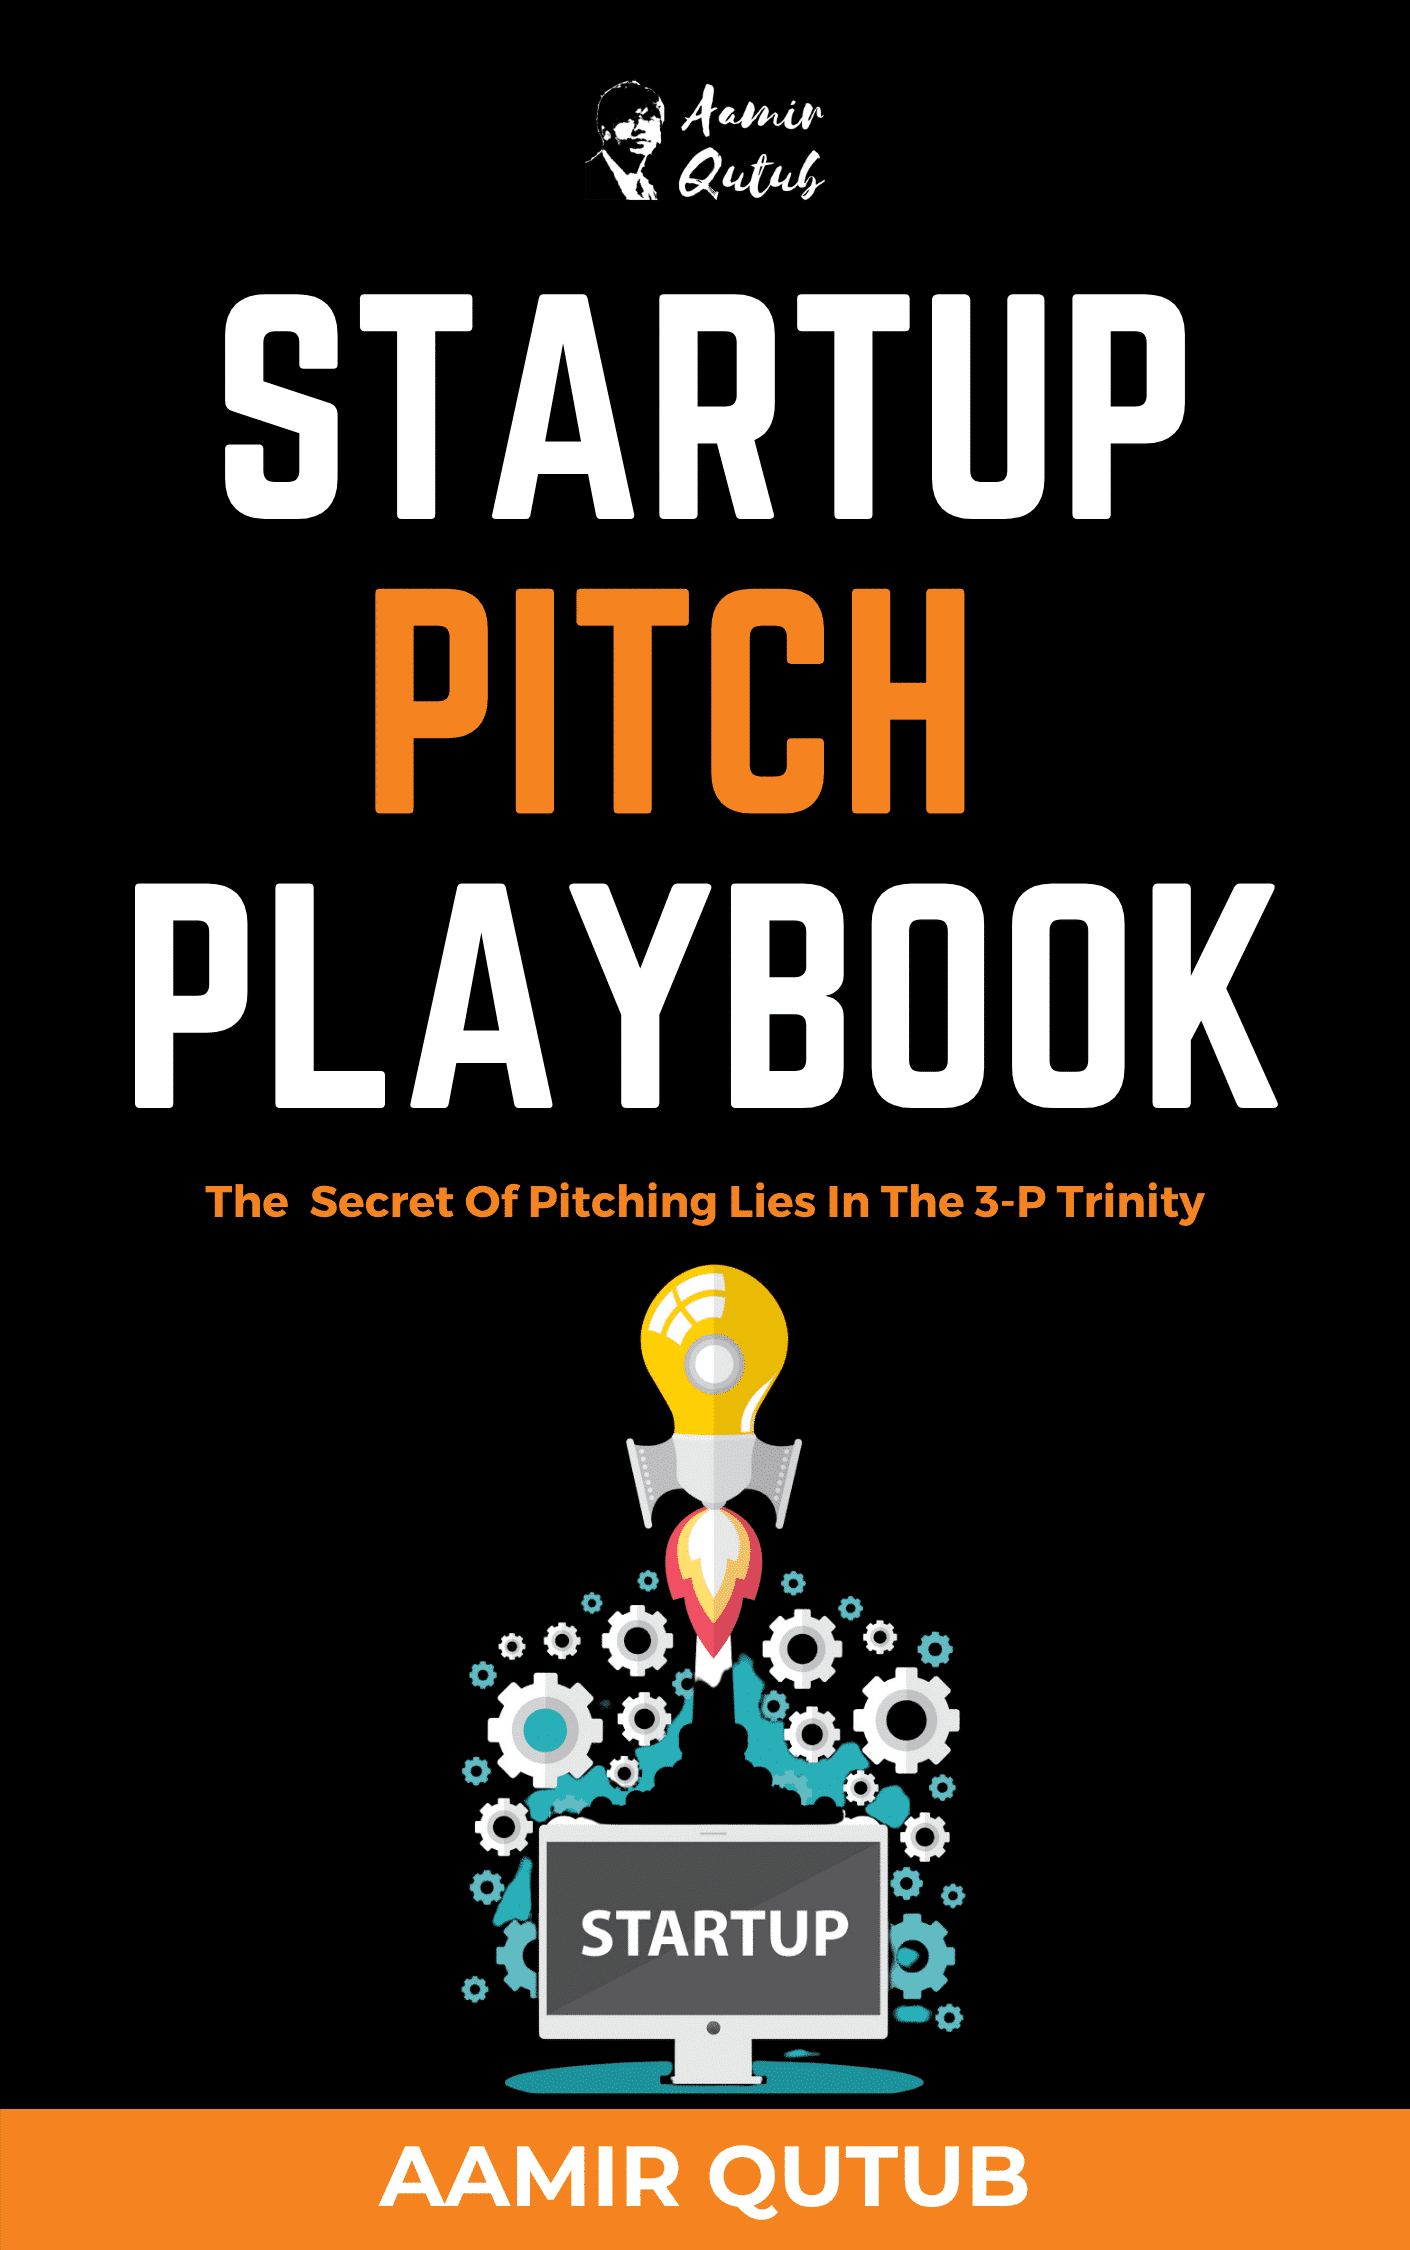 STARTUP-PITCH-PLAYBOOK-1